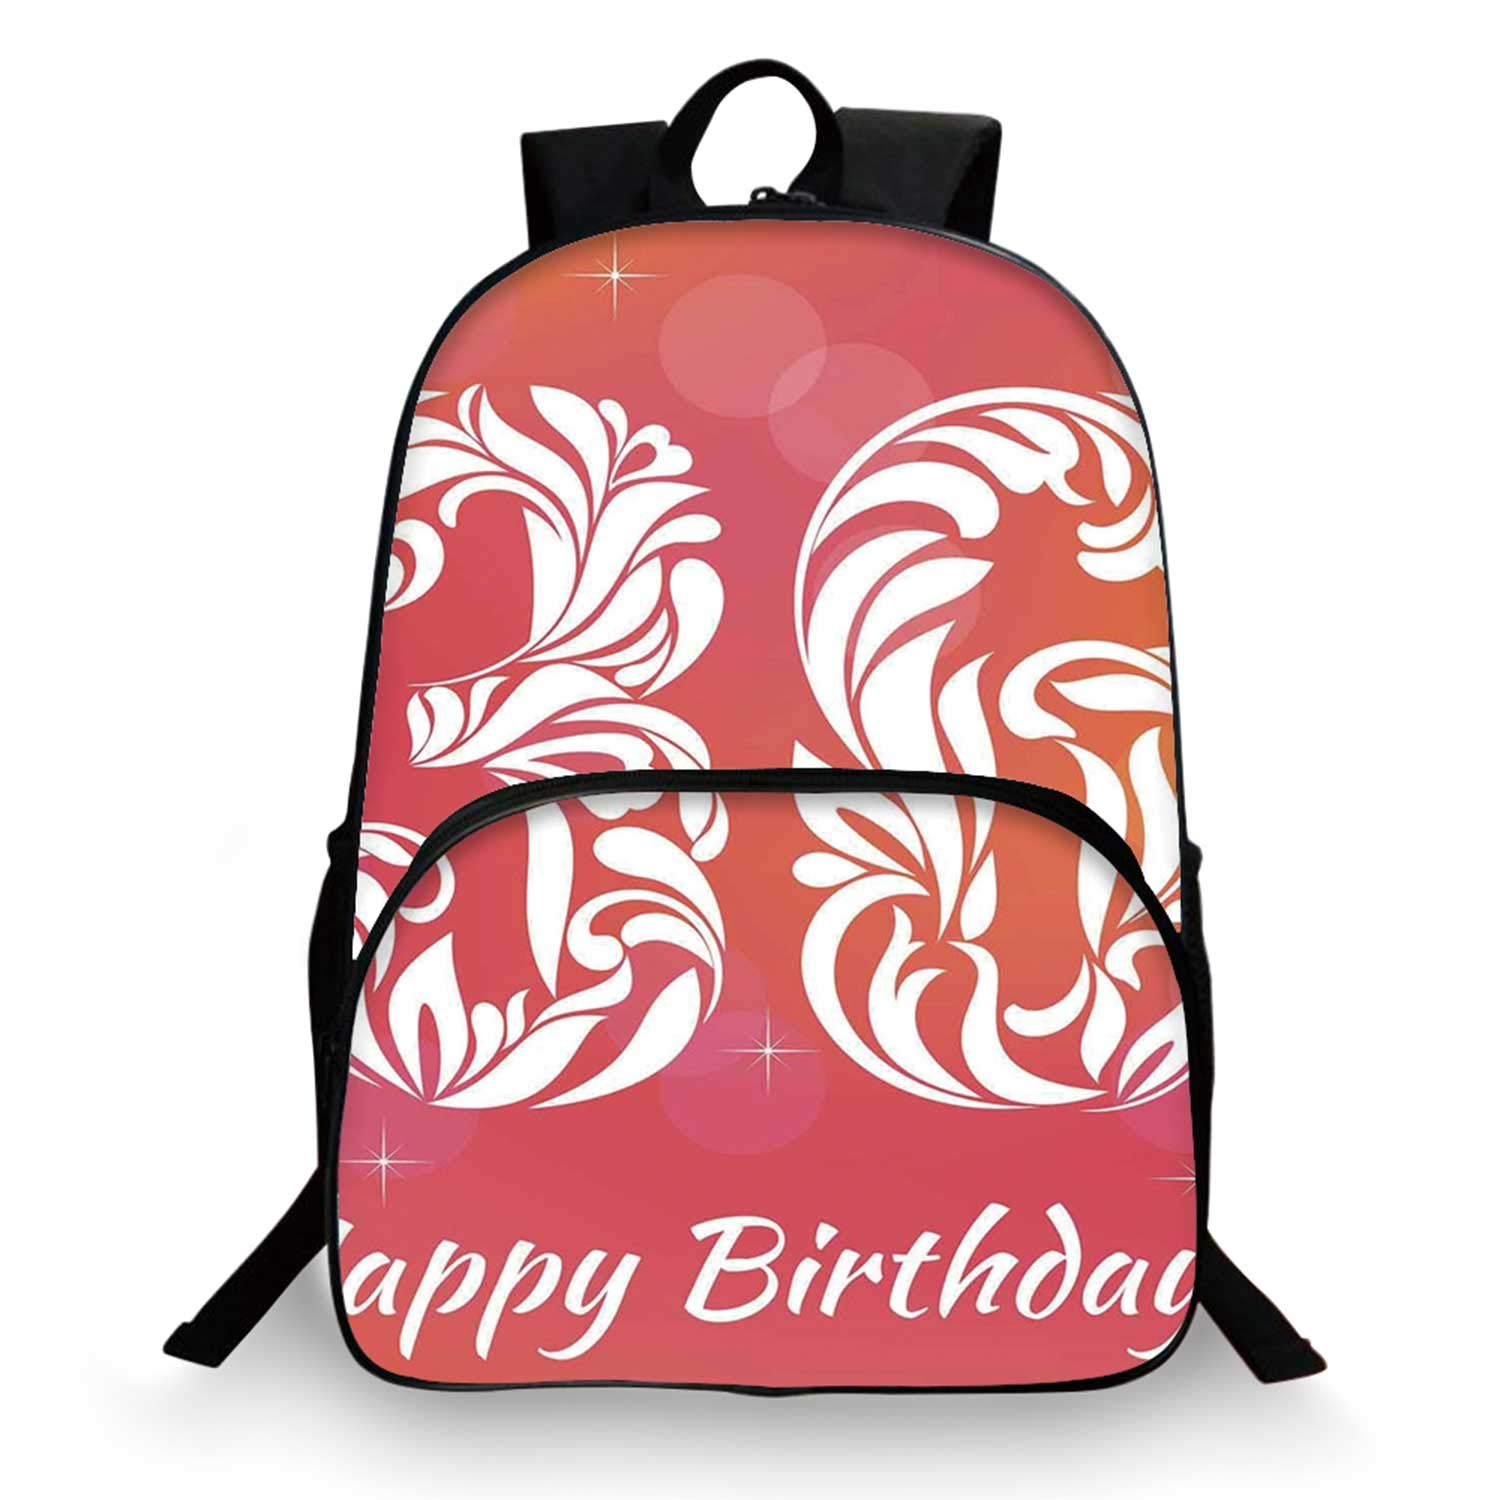 36th Birthday Decorations Various Schoolbag,Ombre Vivid Colored Thirty Six in Floral Design Image for student,11''Lx6''Wx15''H by C COABALLA